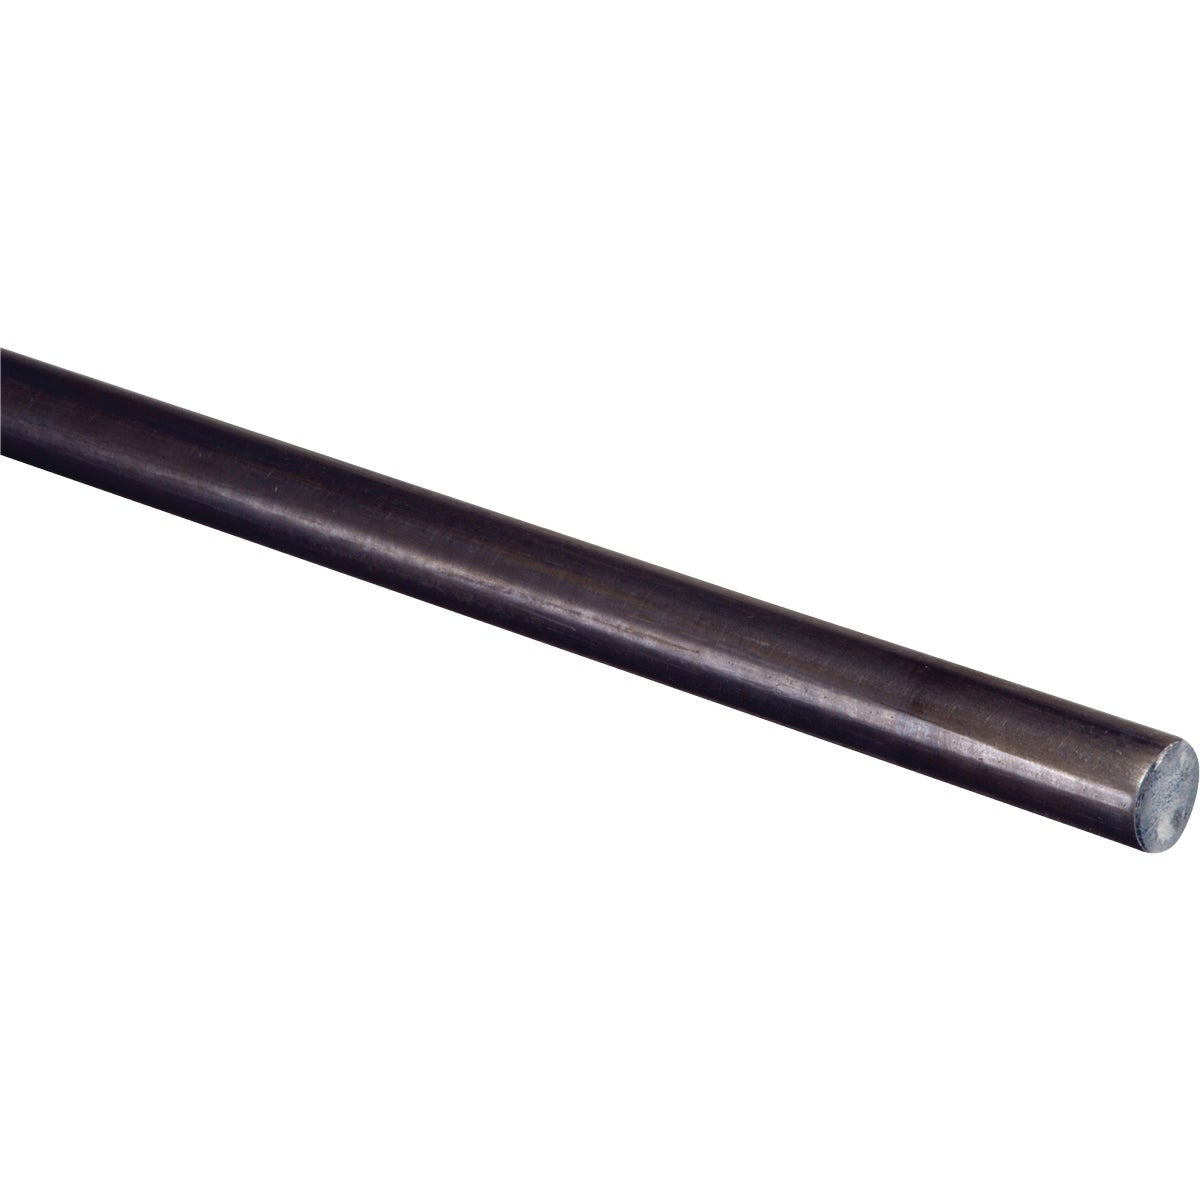 National Mfg. 3/8X72 PS SMOOTH ROD N215343